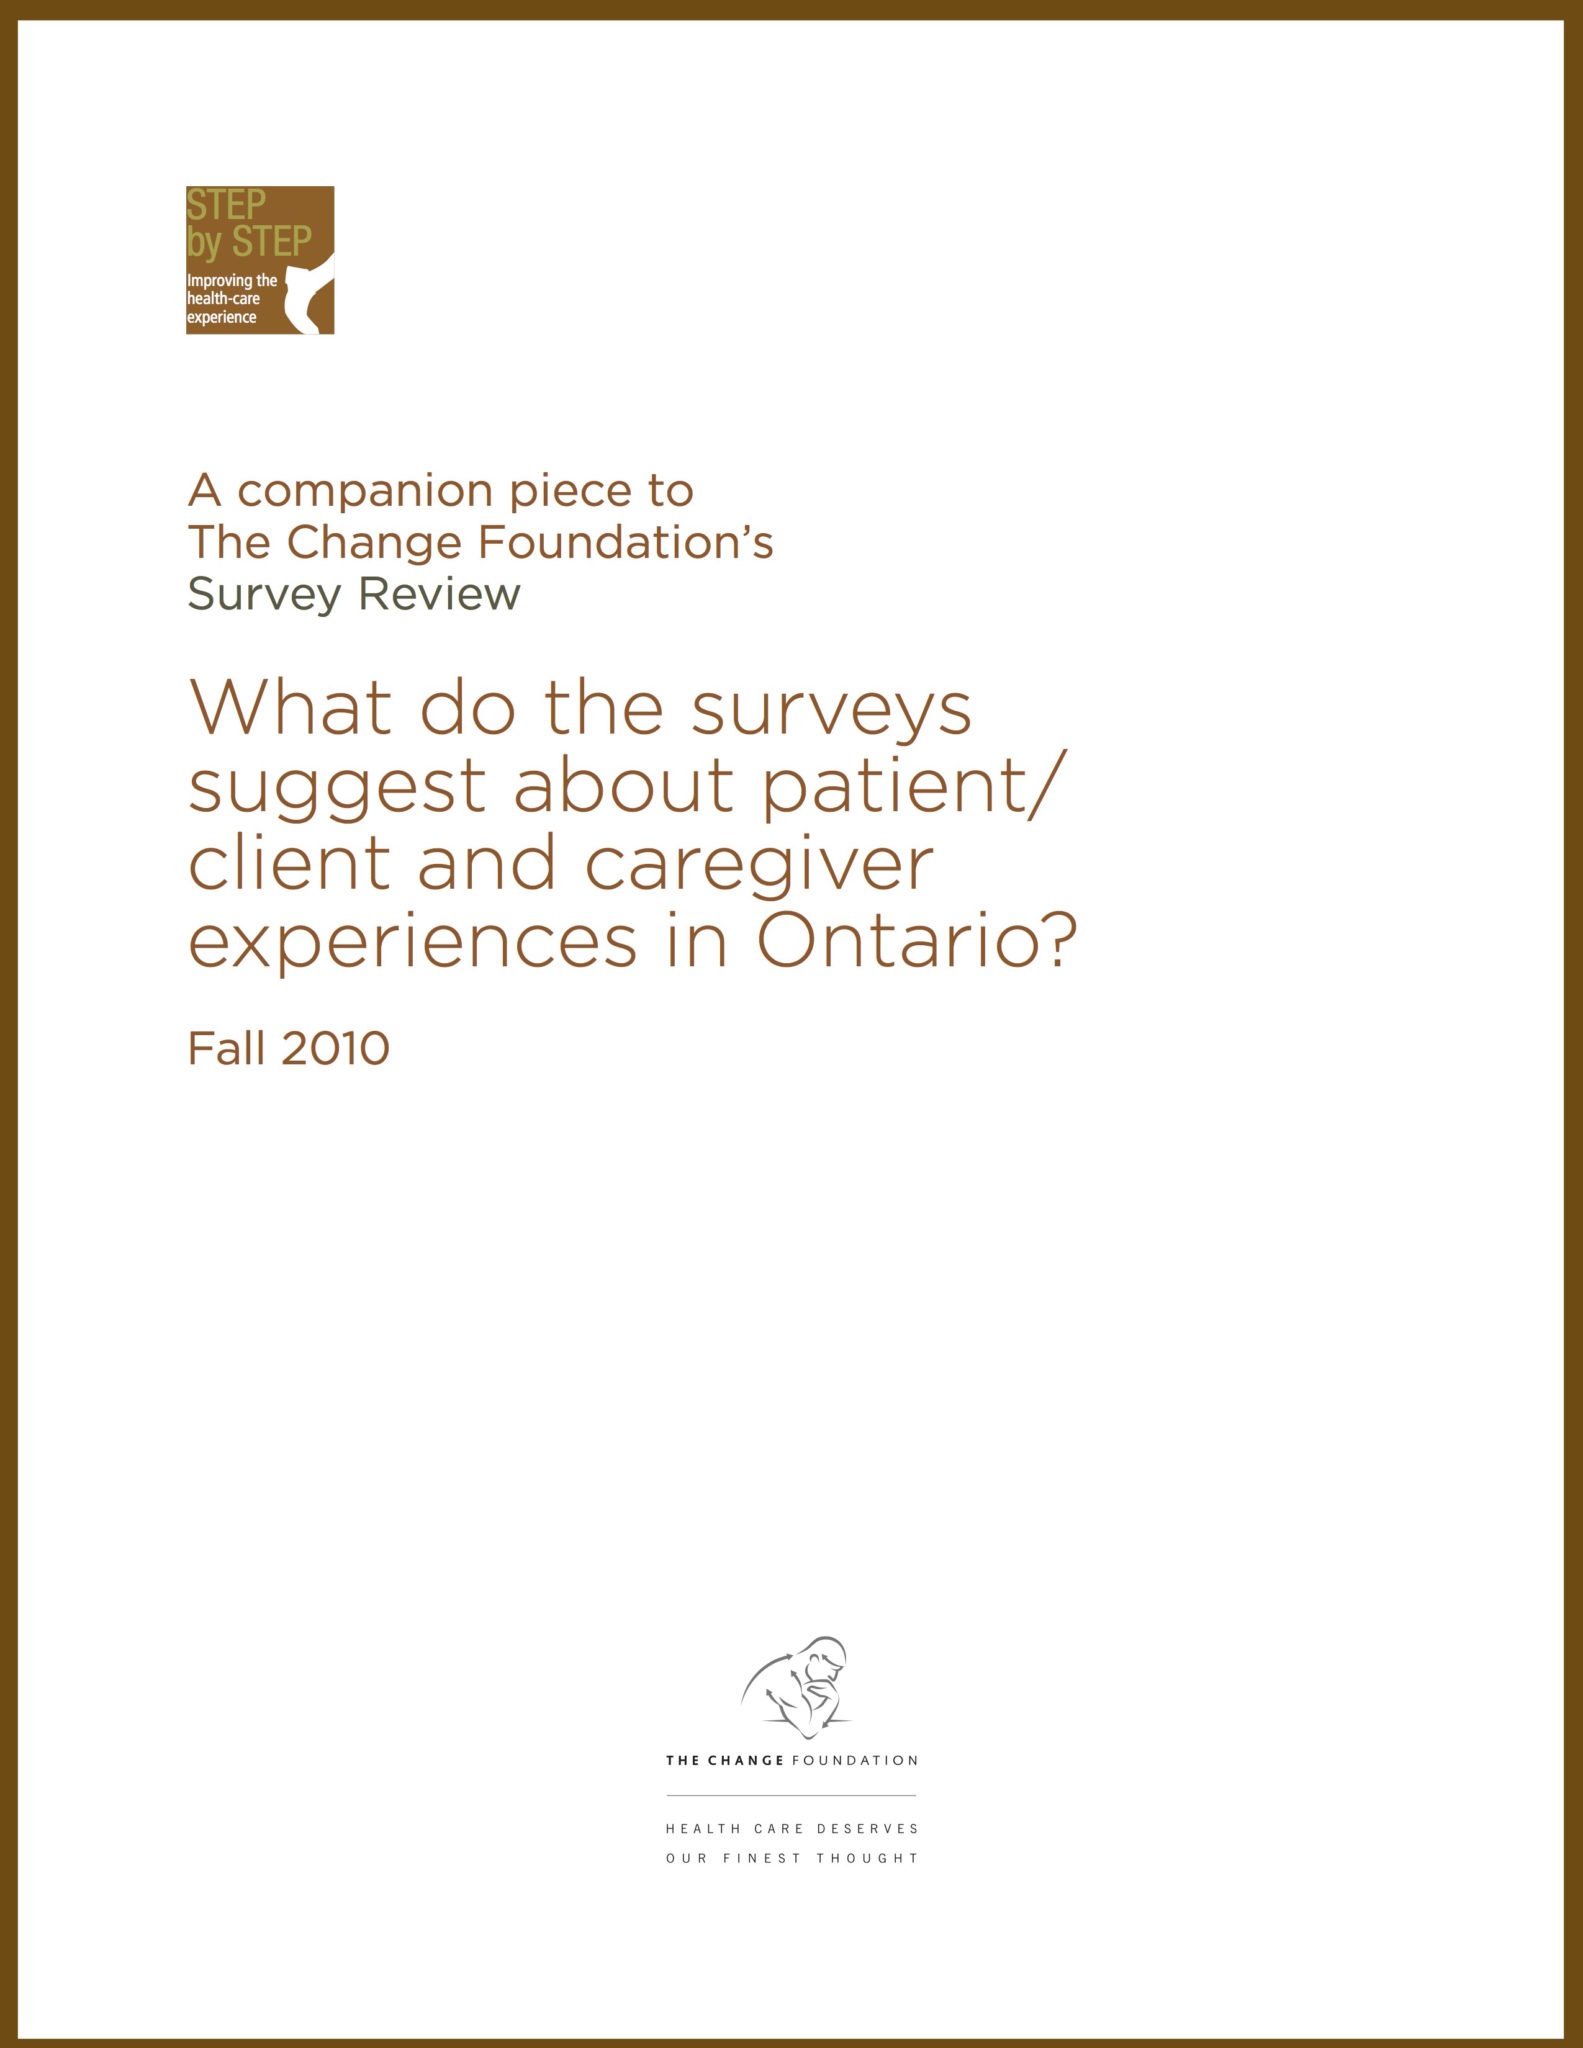 What Do Surveys Suggest About Patient/Caregiver Experiences in Ontario?